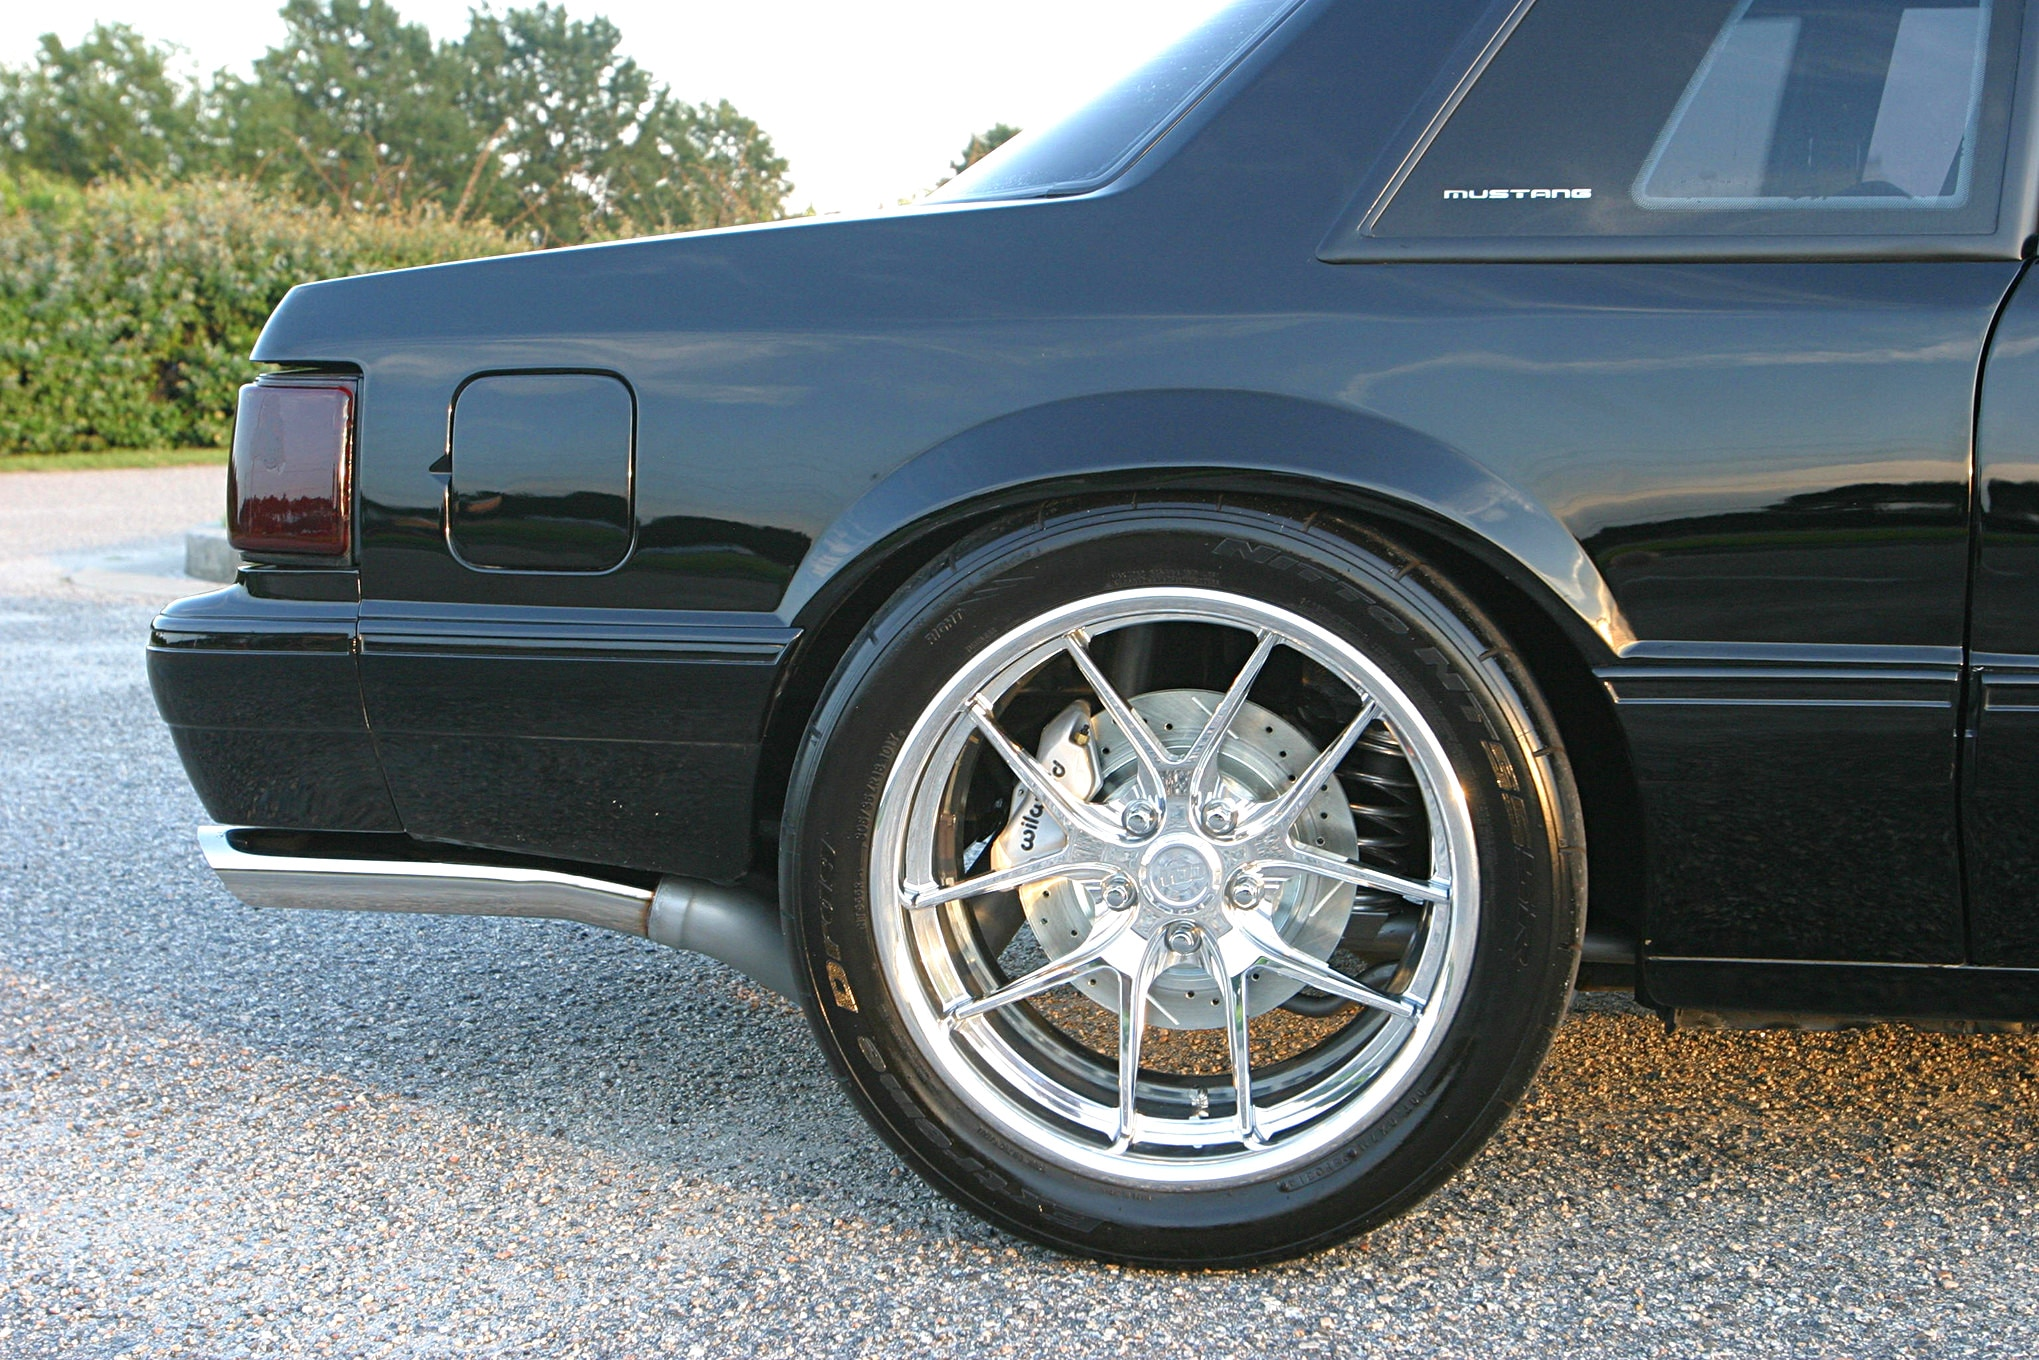 1988 Ford Mustang Lx Coupe Kody Smith Exterior 4